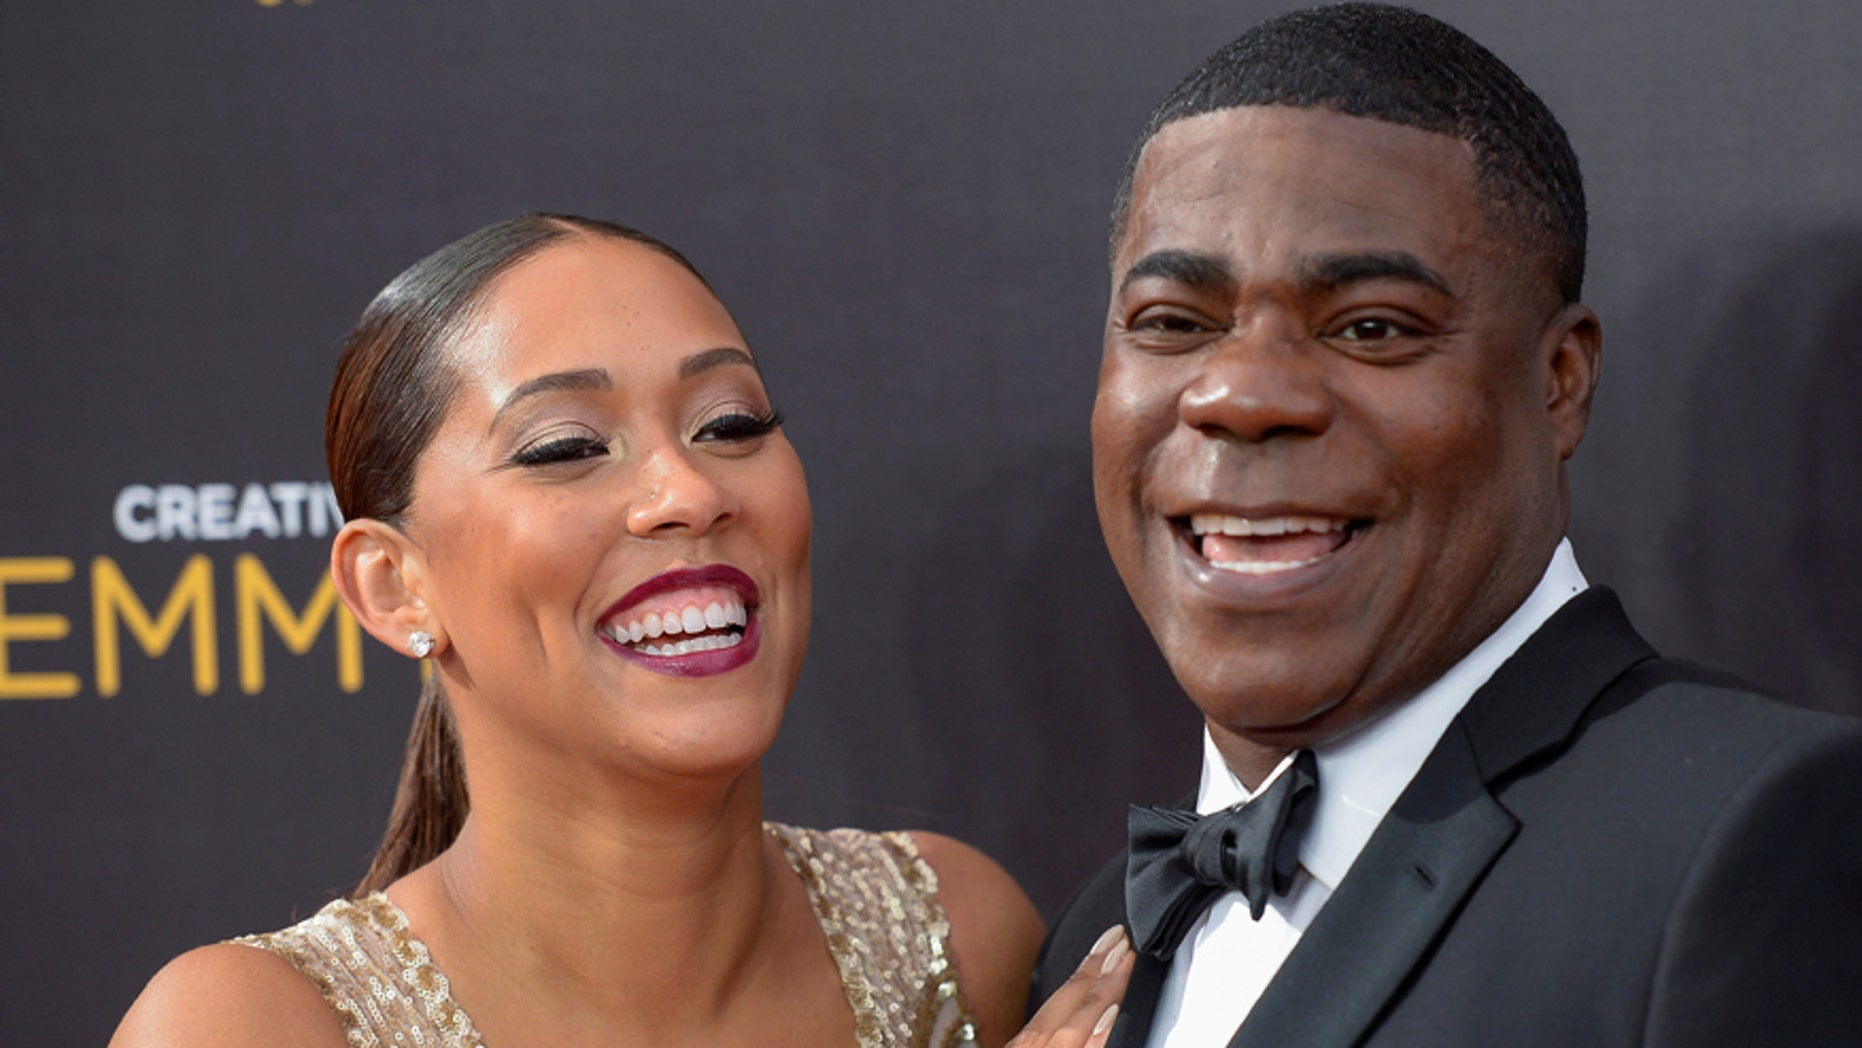 Morgan and wife actress Megan Wollover arrive at the Creative Arts Emmys